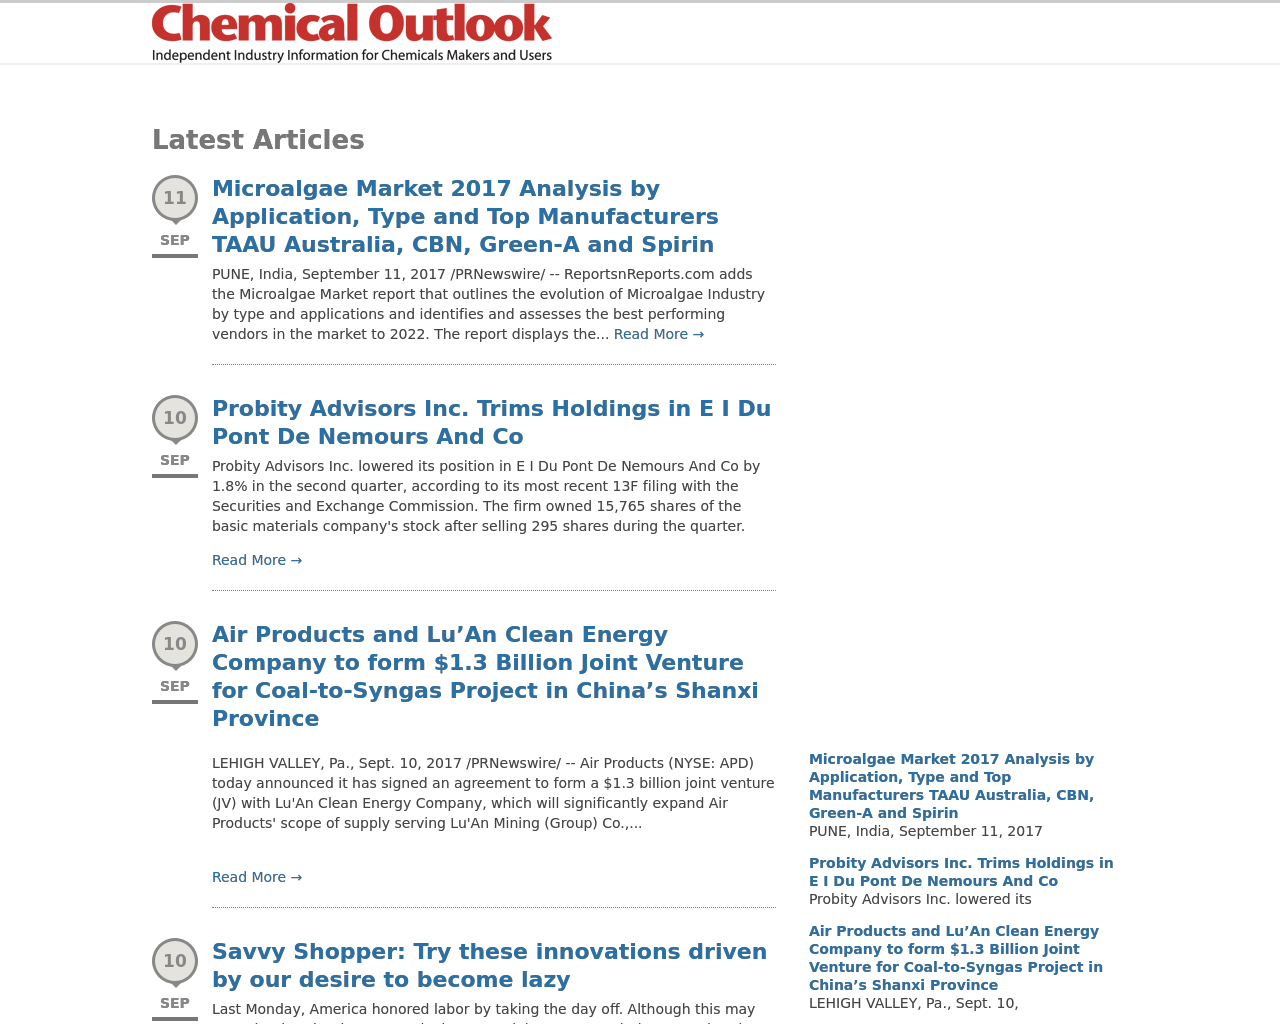 Chemical-Outlook-Advertising-Reviews-Pricing